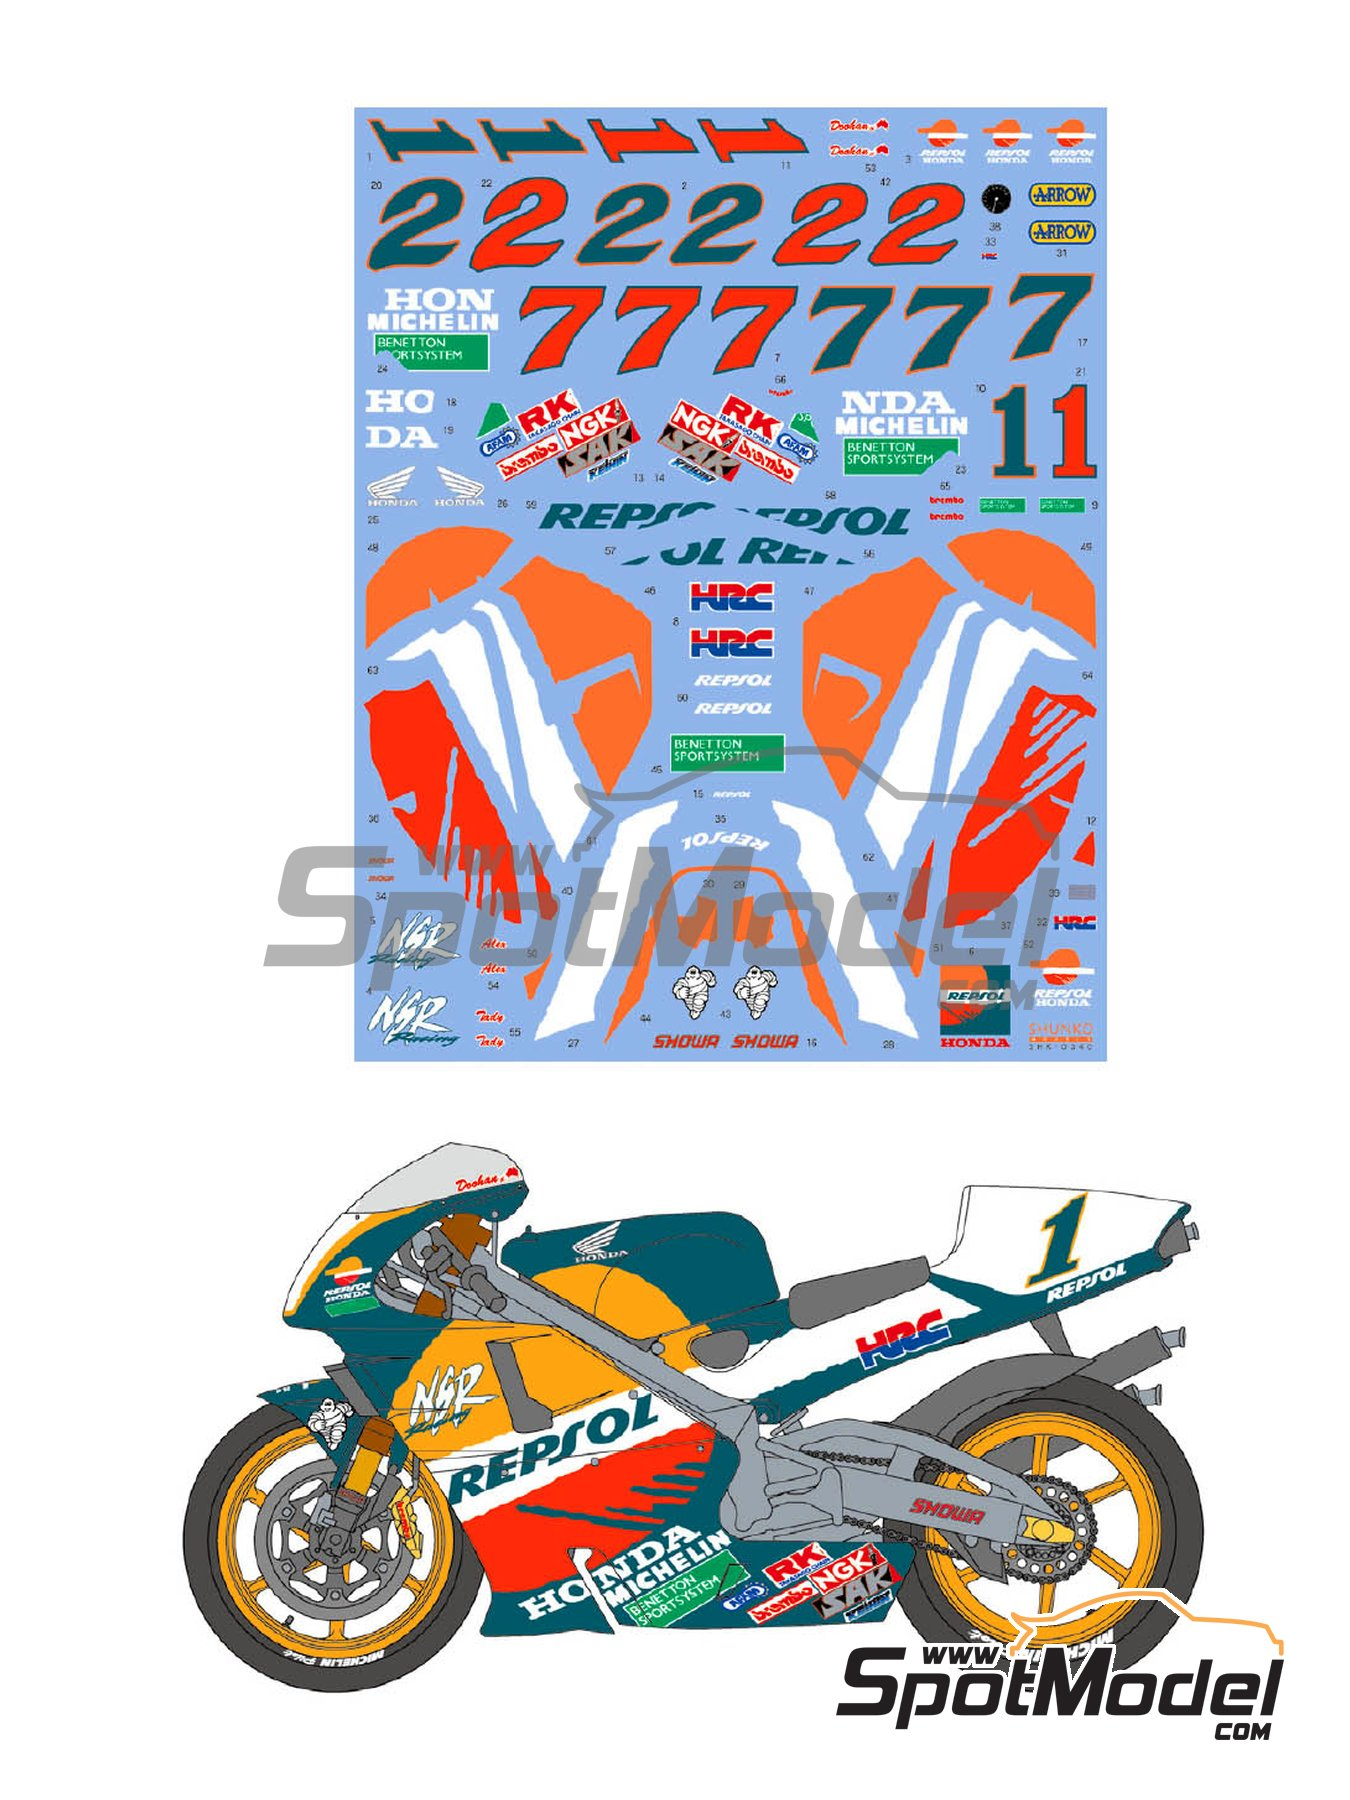 Honda NSR500 Repsol - Motorcycle World Championship 1997 | Marking / livery in 1/12 scale manufactured by Shunko Models (ref. SHK-D340) image